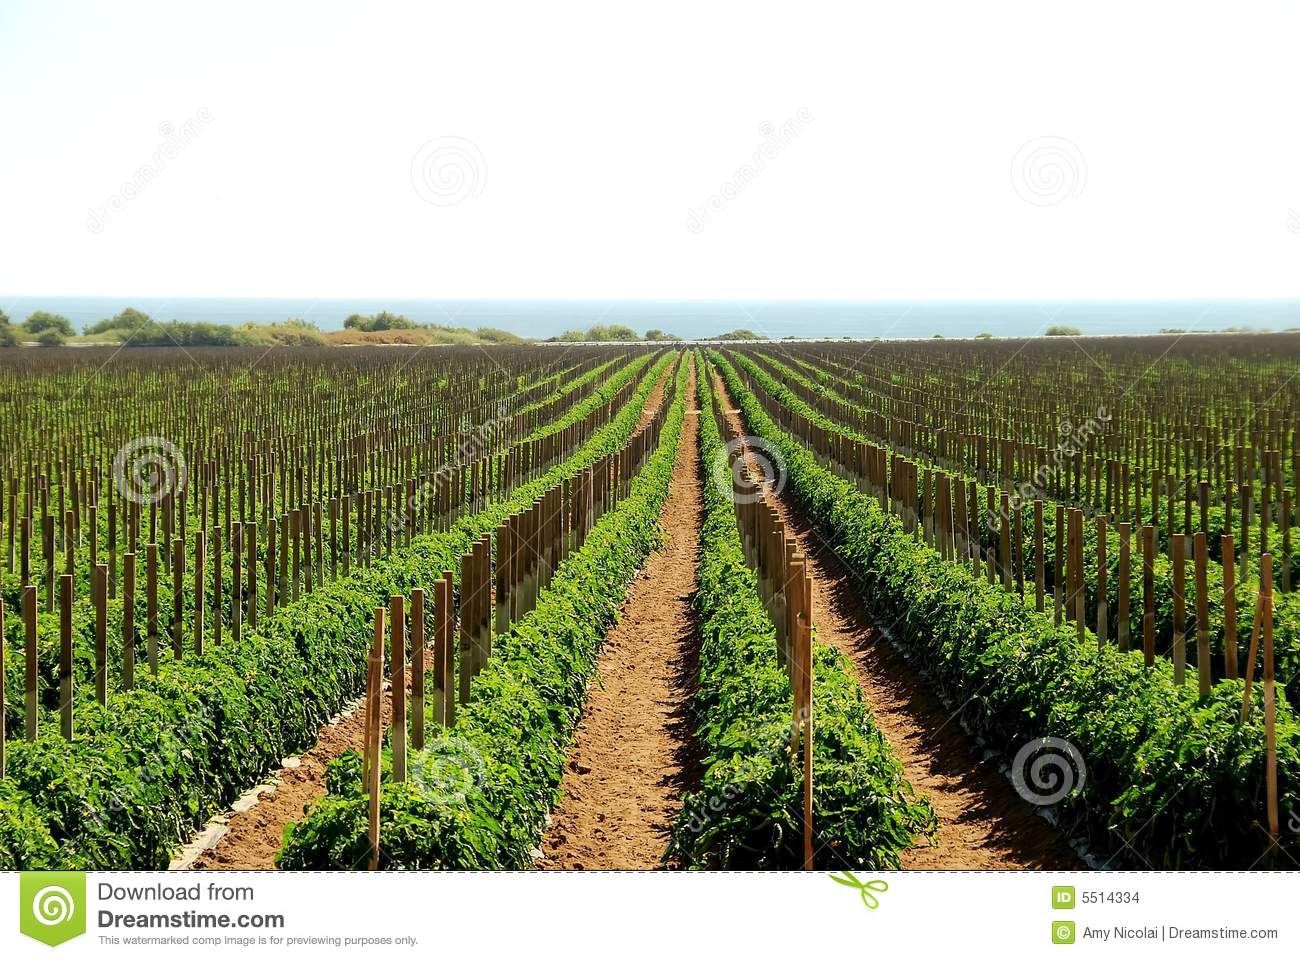 Tomato fields in California